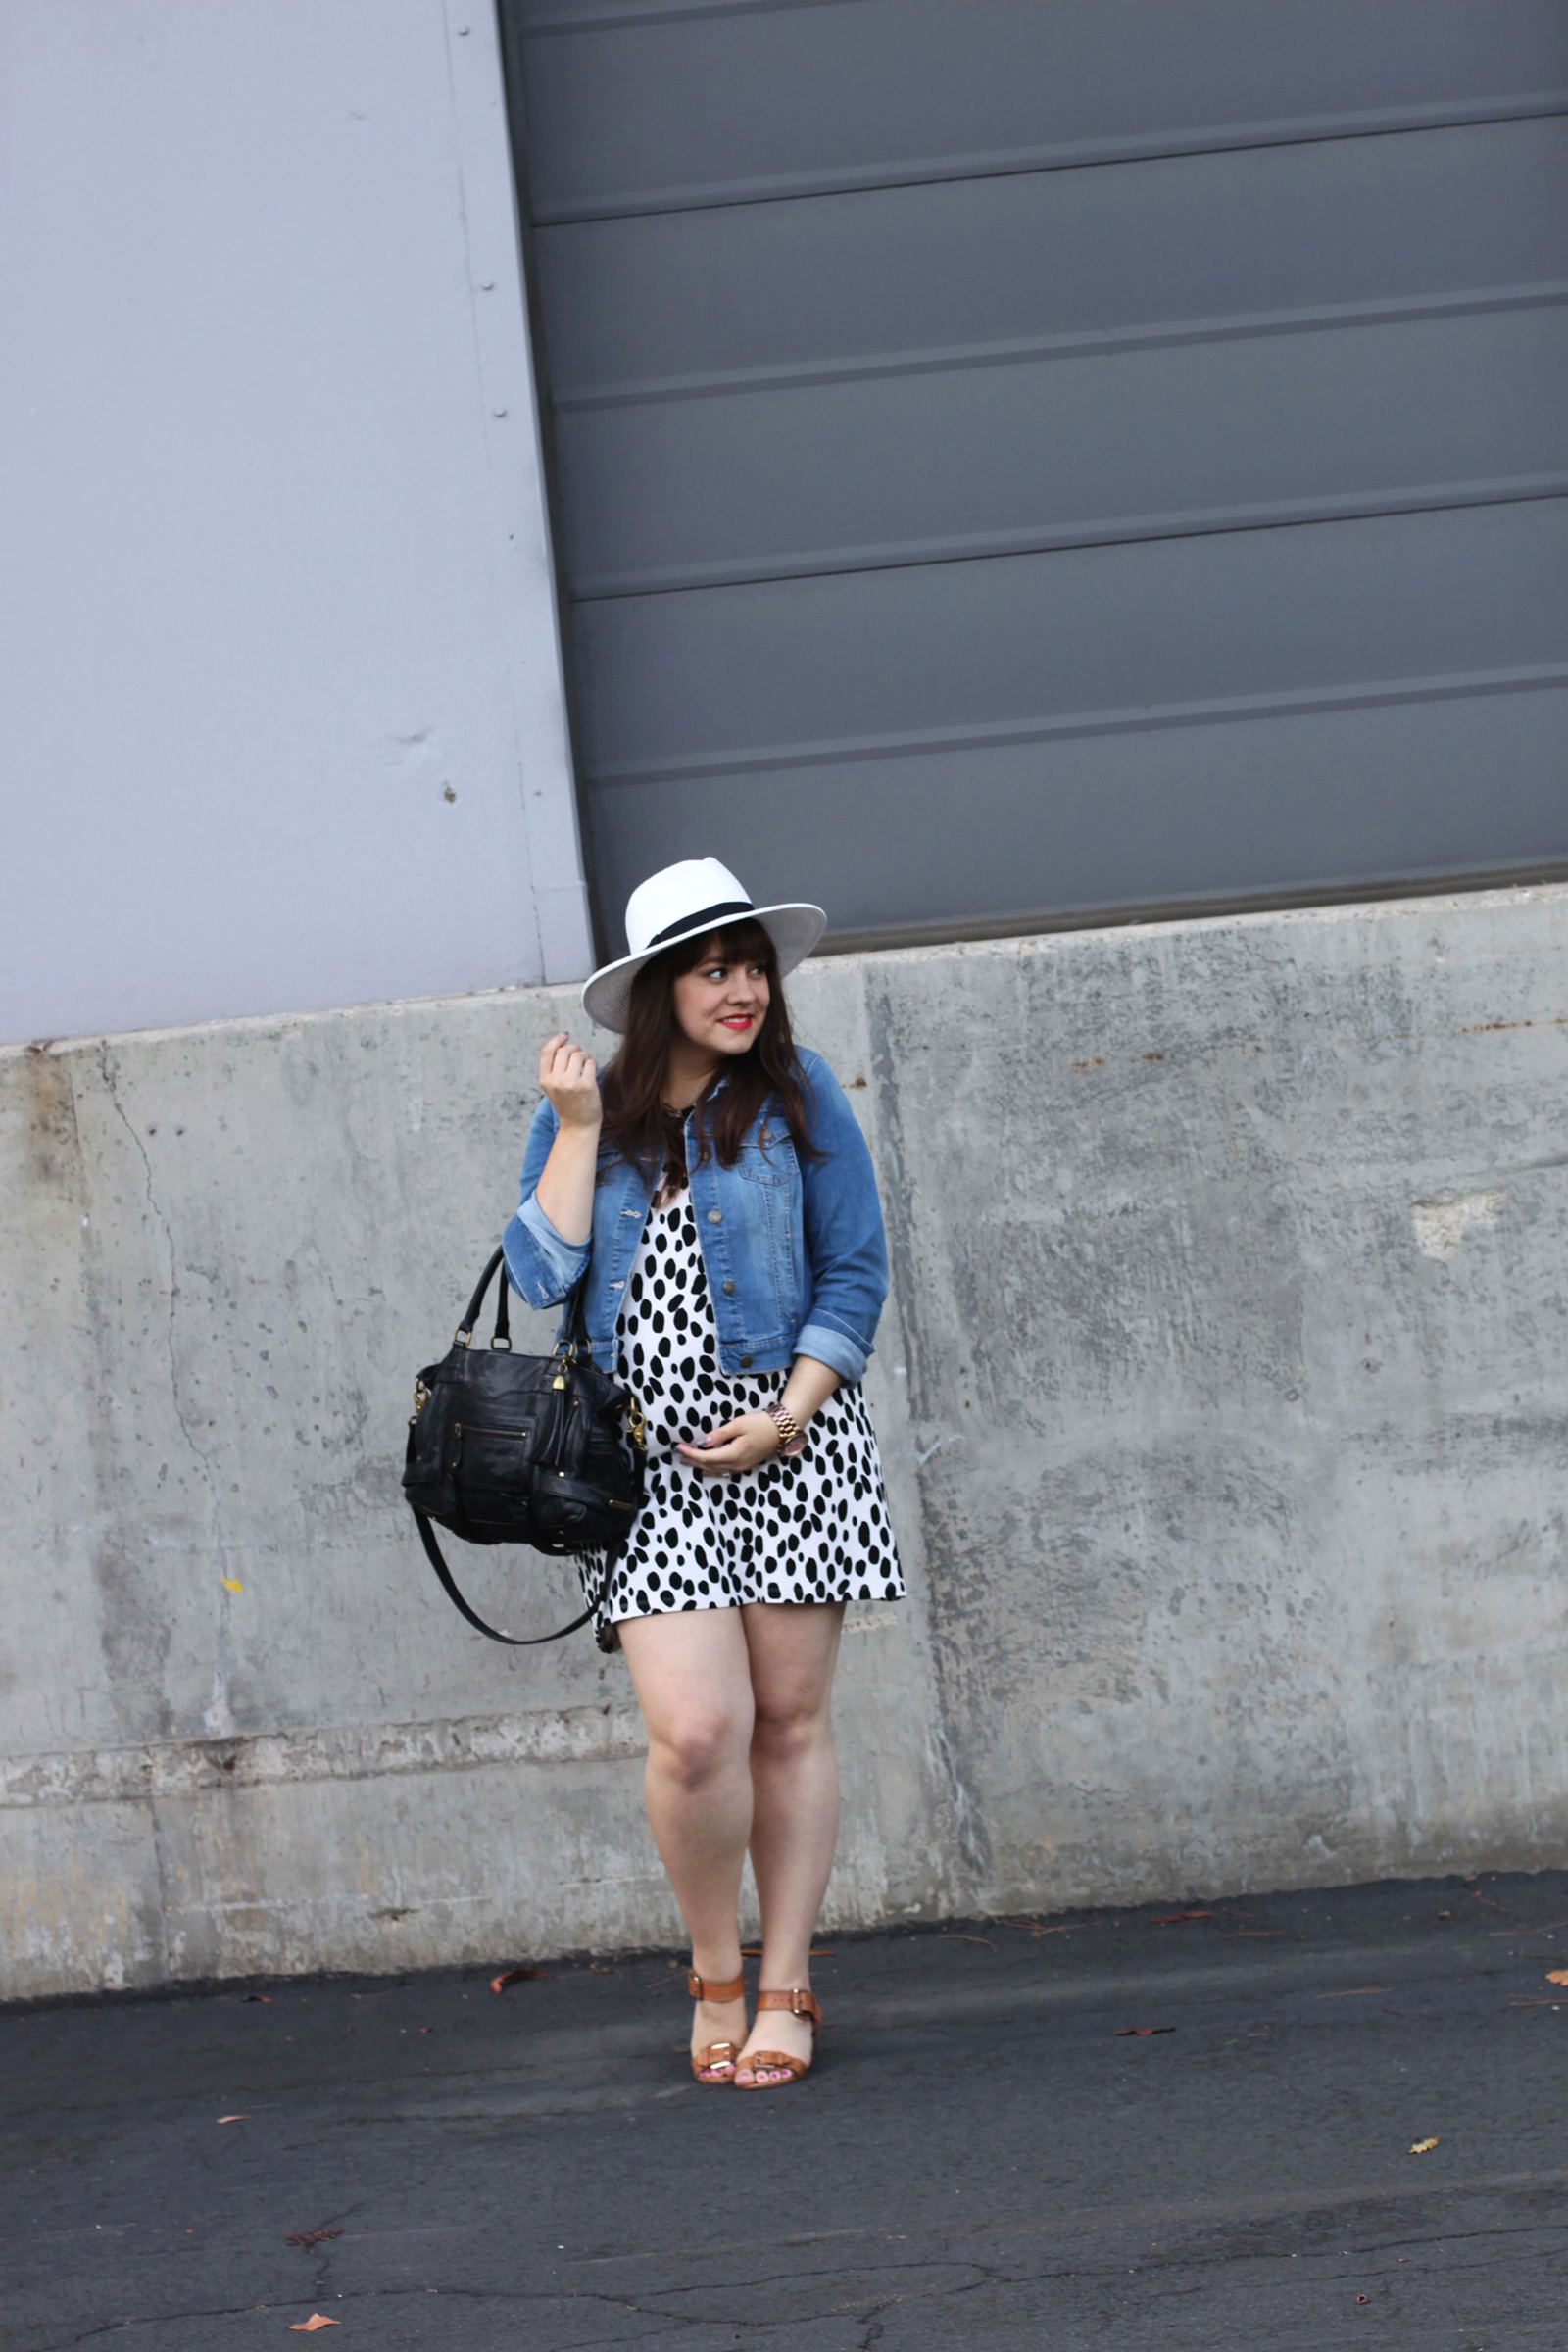 Maternity Remix: If the Hat Fits, Wear It